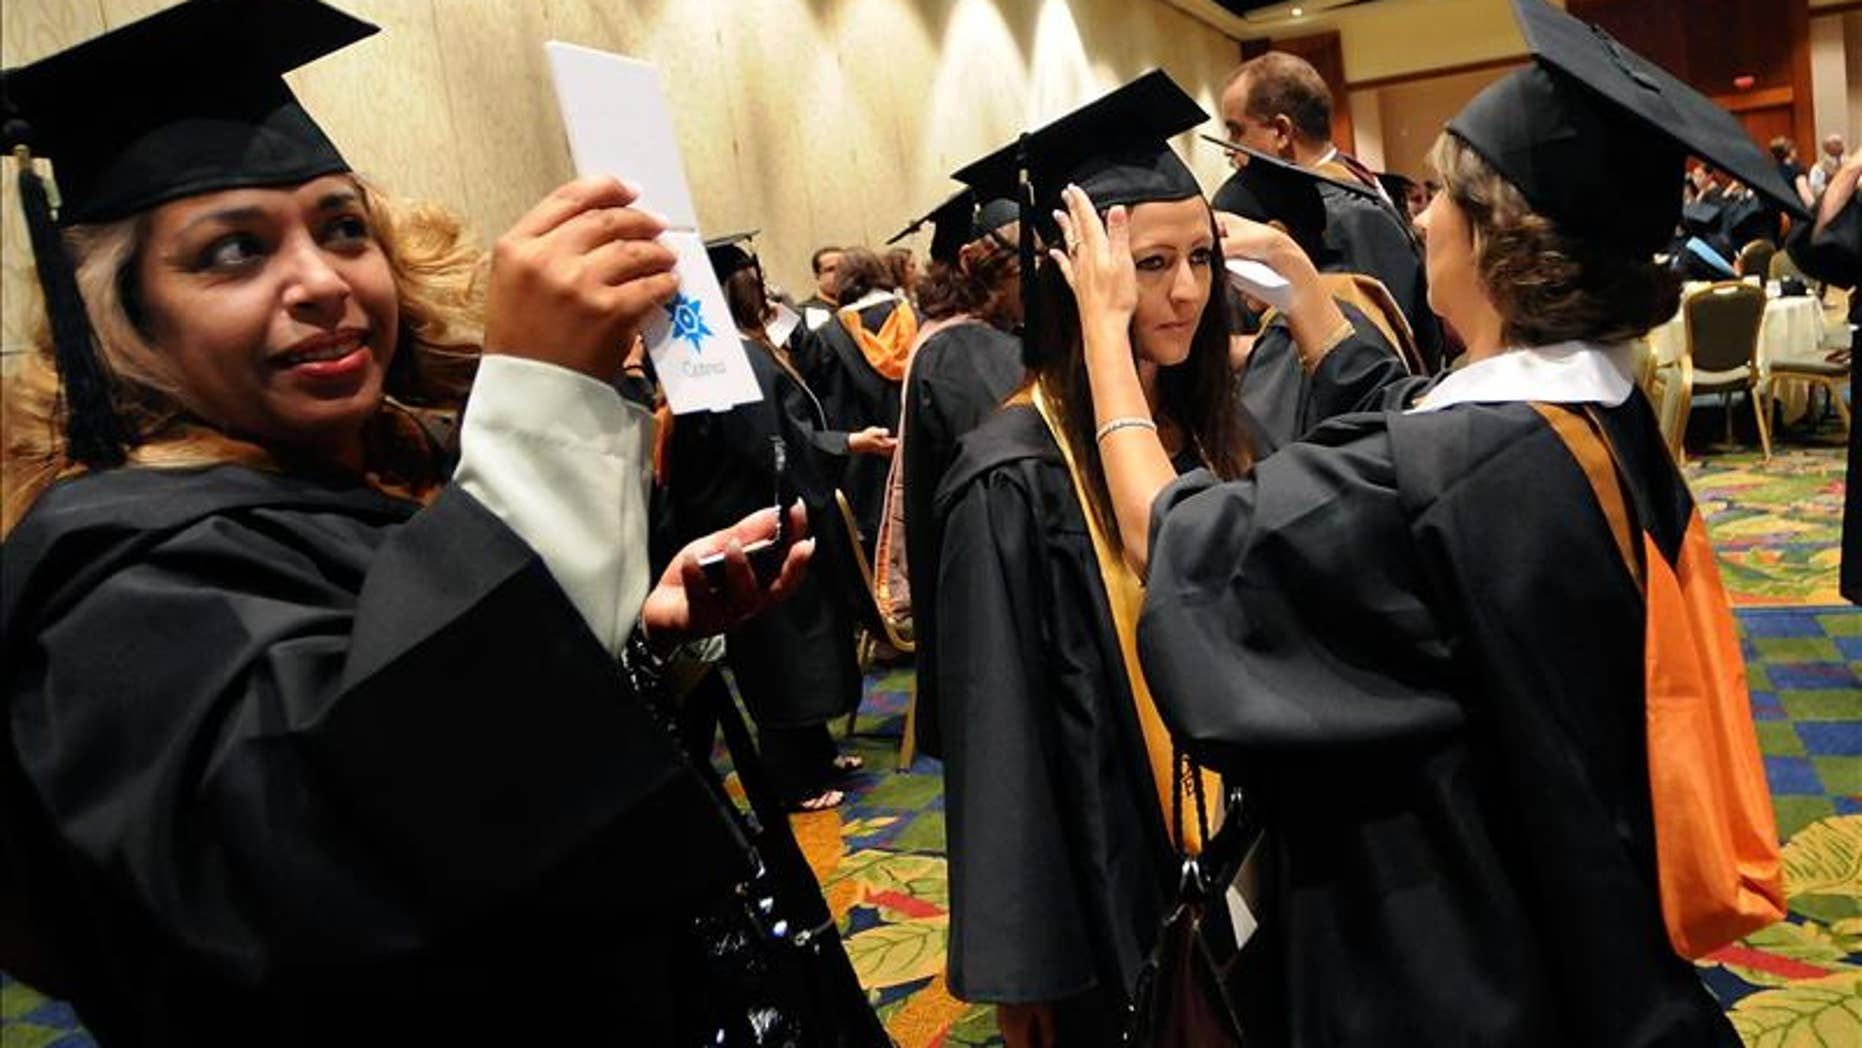 More than 60 percent of Hispanics graduated last year, the highest rate in seven years, yet Hispanics earn on average $8,500 less than most Nevadans each year.